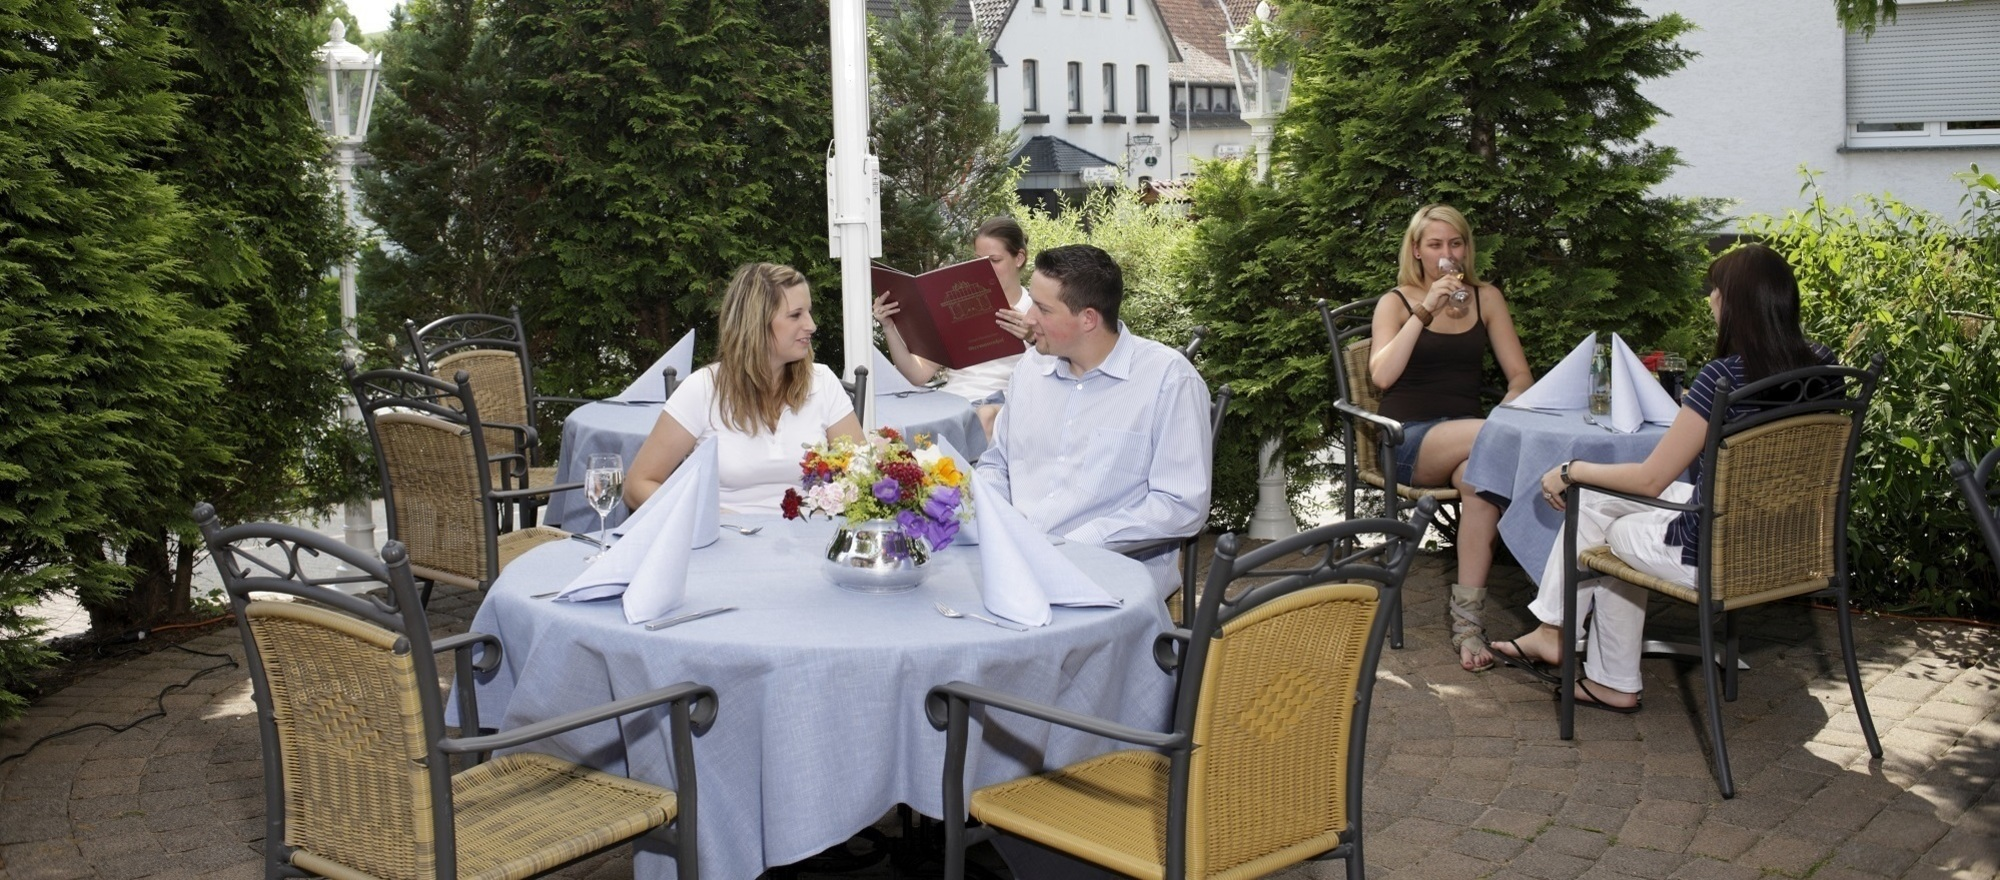 Spend some time at the sun terrace of the 3-star hotel Ringhotel Germanenhof in Steinheim-Sandebeck